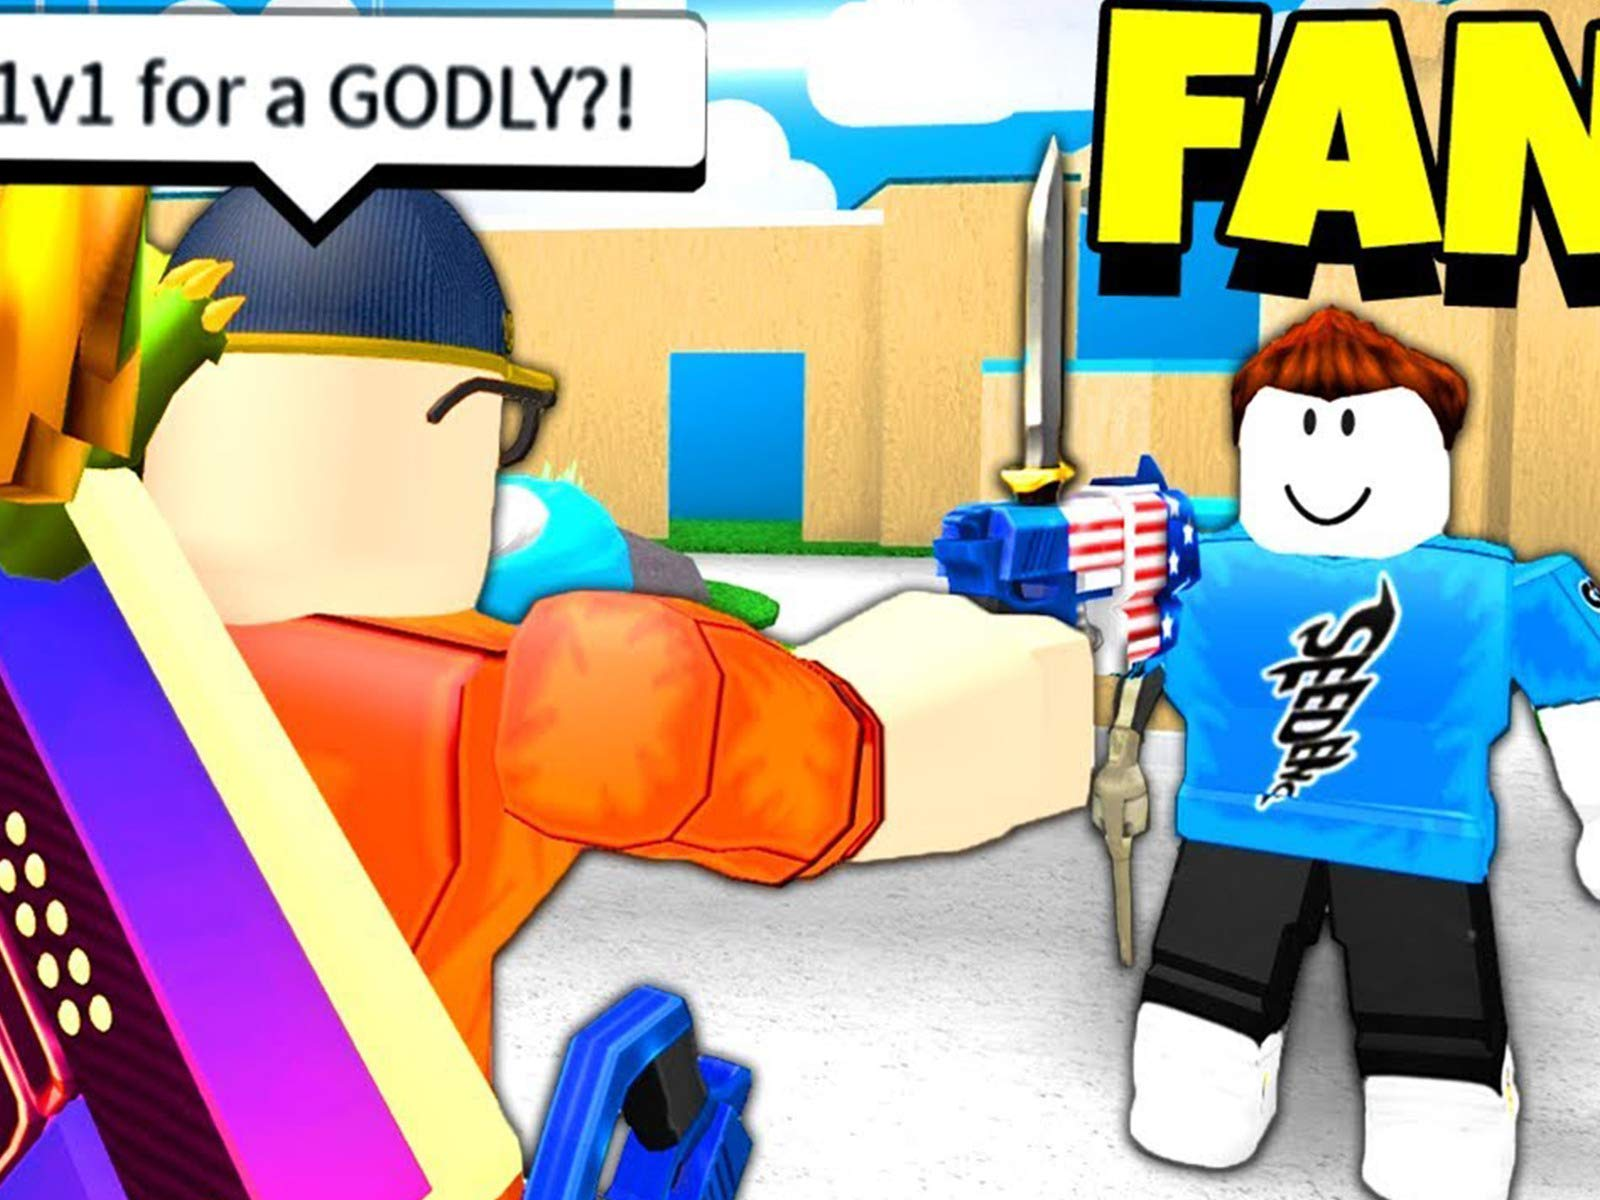 Roblox Murderer Mystery 2 Godly Pets Free Robux No Human Watch Clip See Deng Prime Video